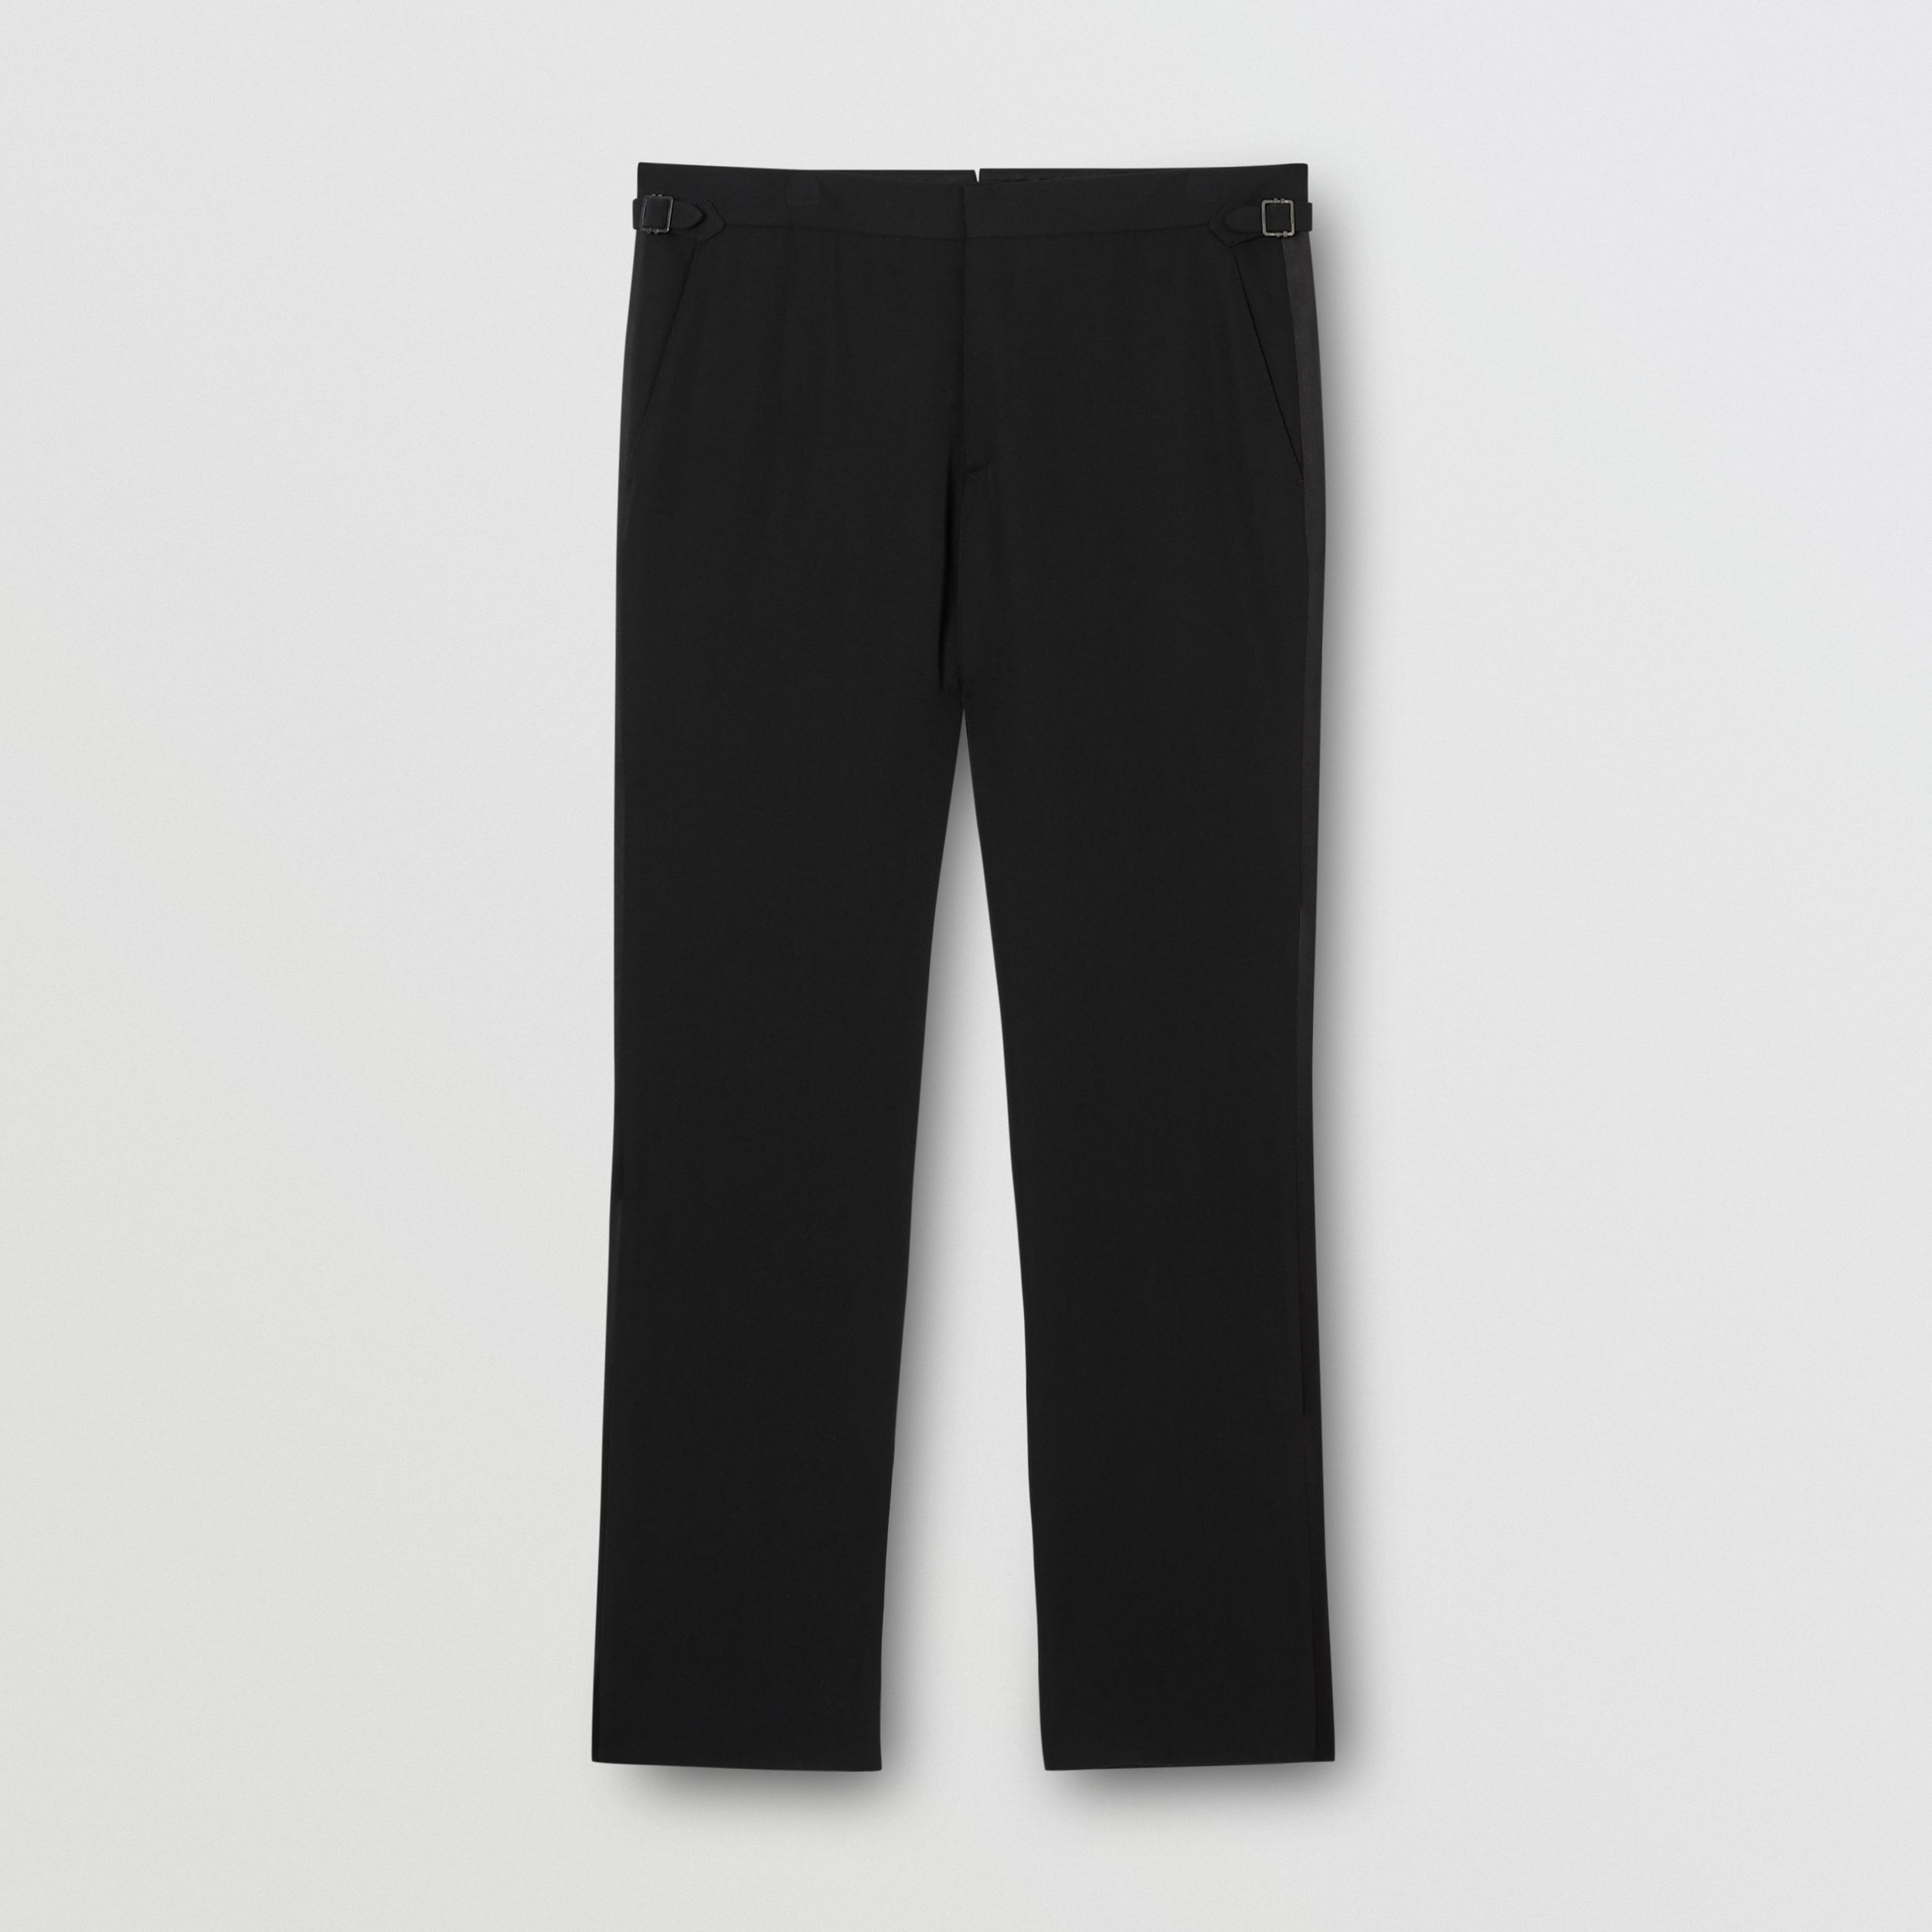 Classic Fit Silk Trim Wool Tailored Trousers in Black - Men | Burberry Canada - 4